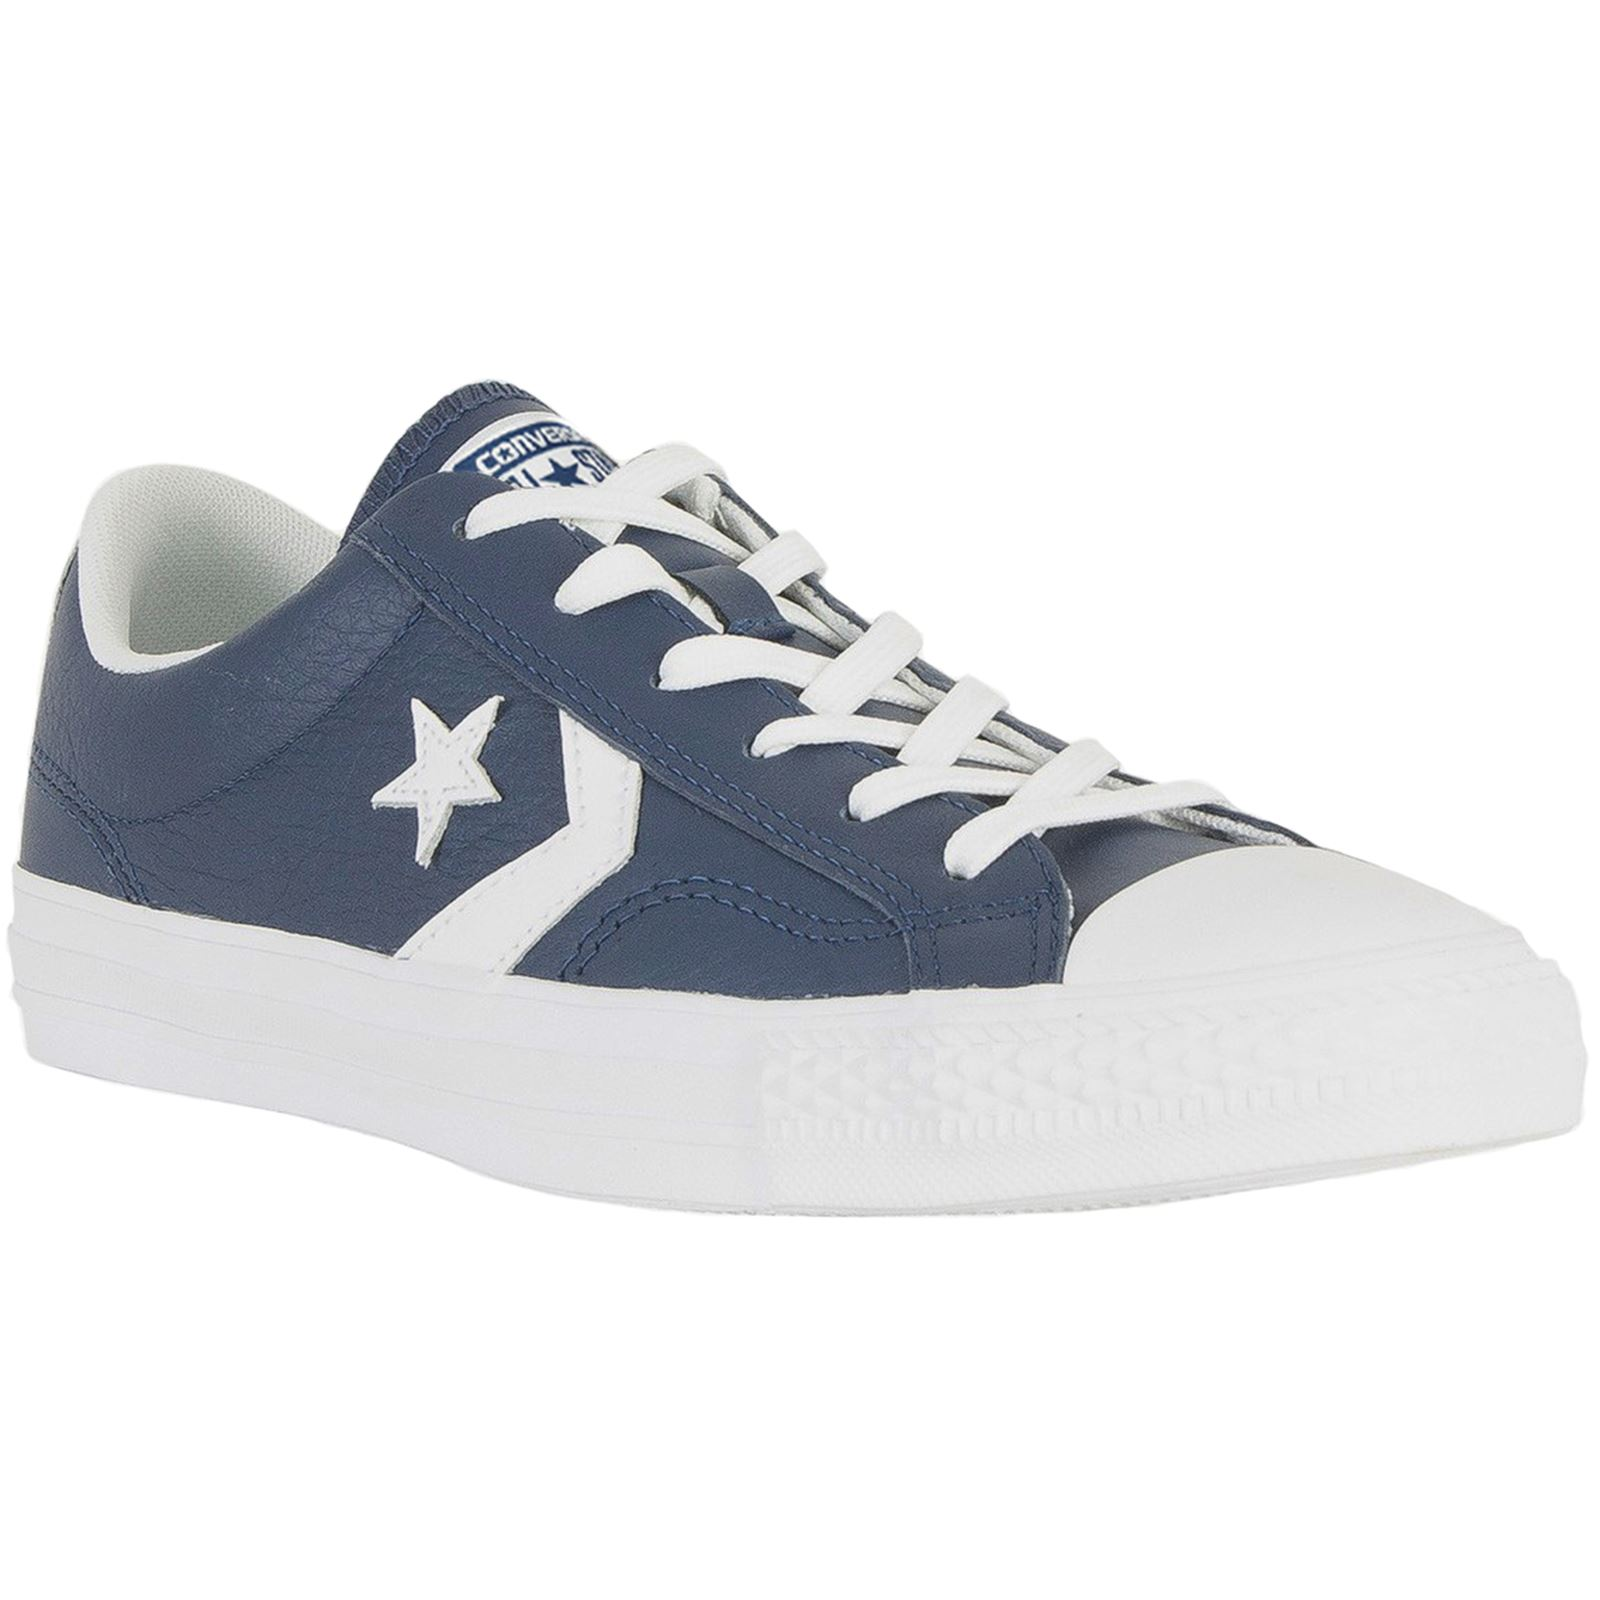 Bottines Femme Converse Womens Star Player Ox Navy Canvas Trainers 39 EU Funtasma Electra-2090 EO5qJd